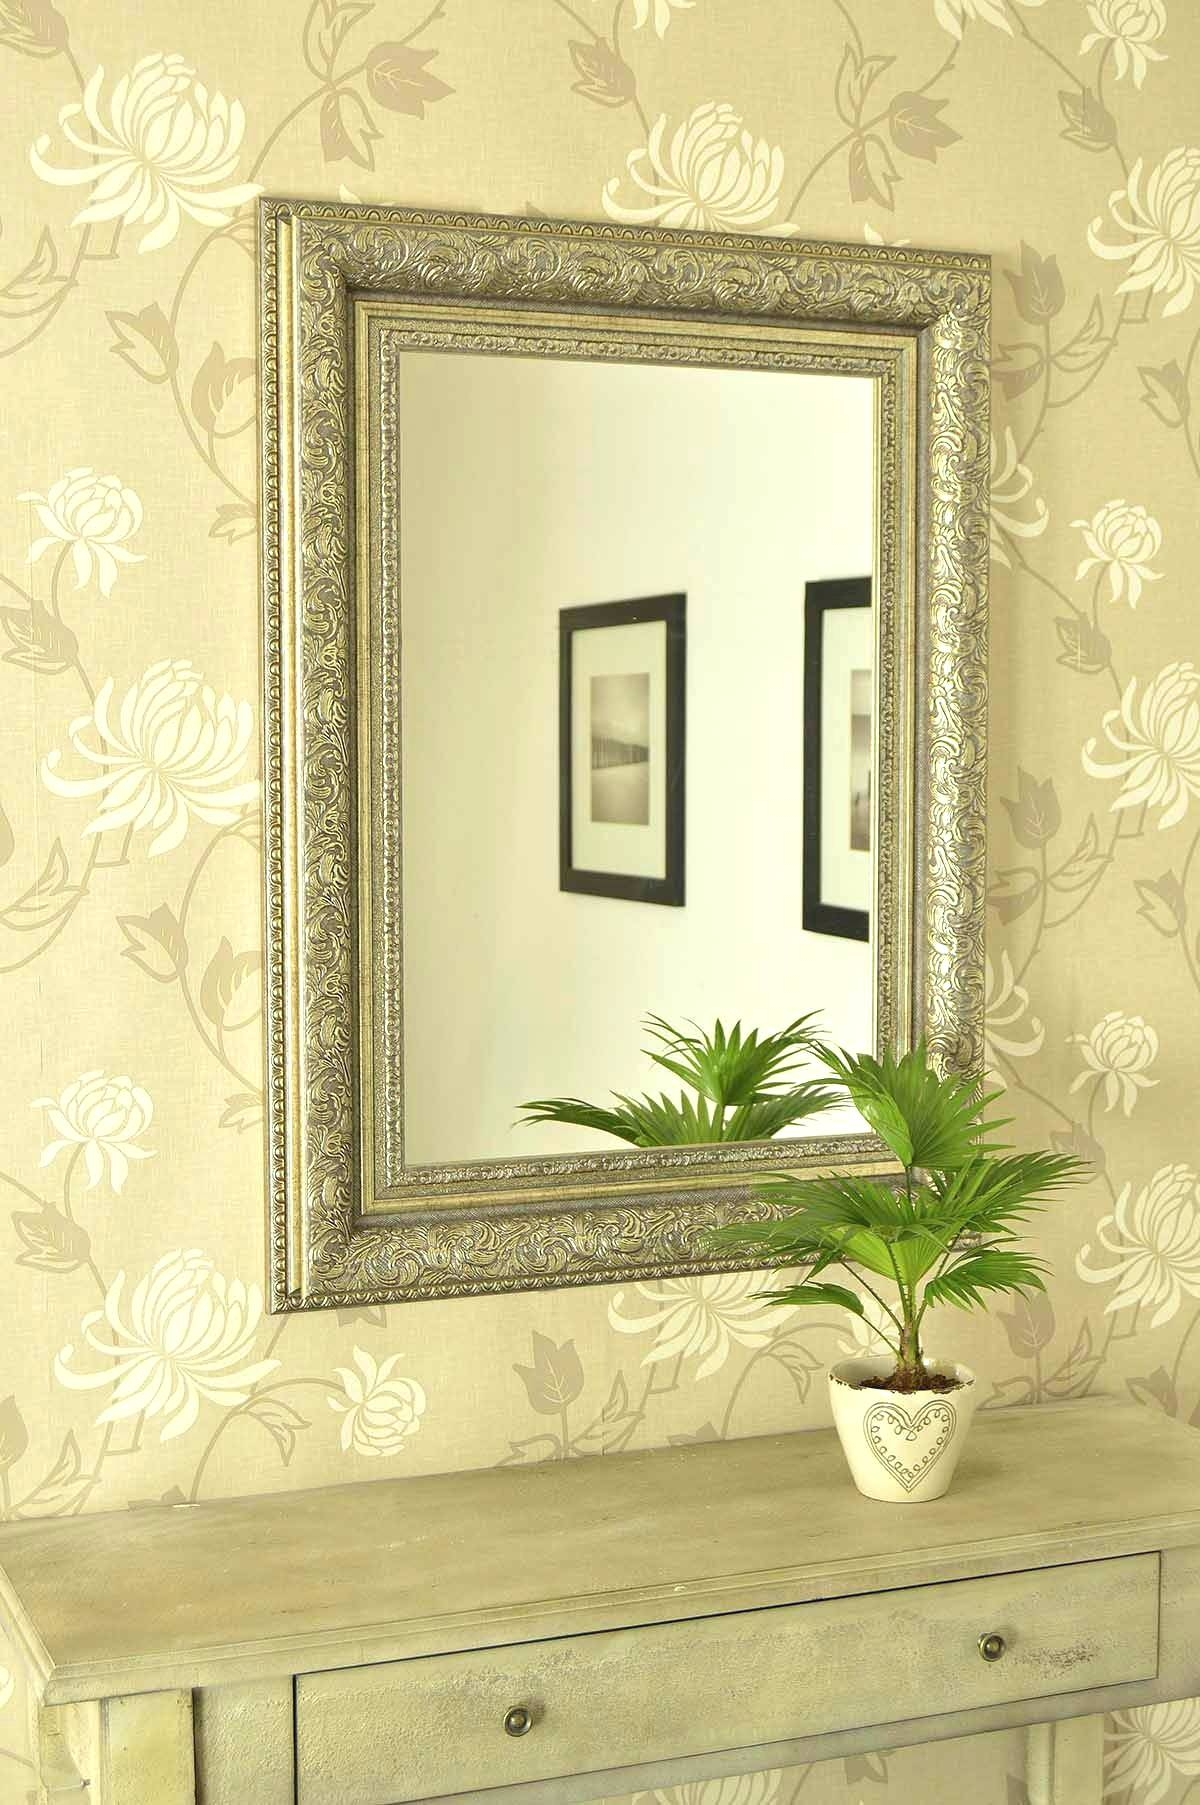 Wall Mirrors ~ Modern Design Wall Mirrors Modern Contemporary Wall Intended For Current Mirrors Modern Wall Art (View 19 of 20)